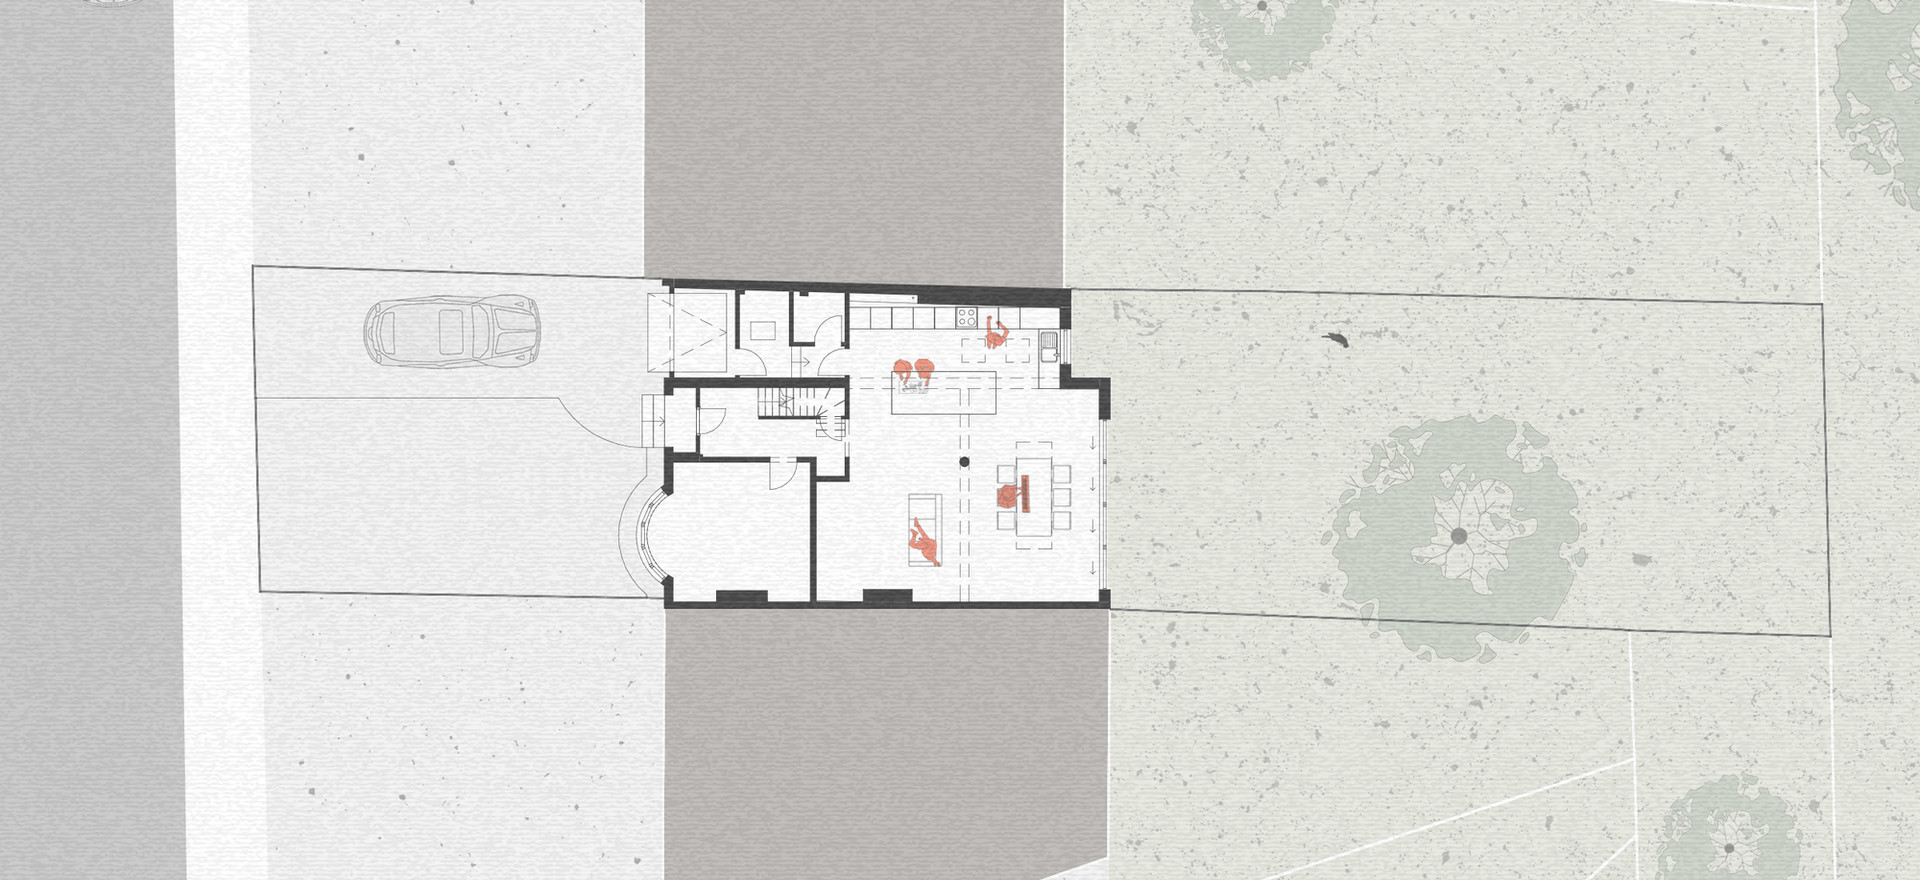 wr-ap_11PW_ground floor plan.jpg